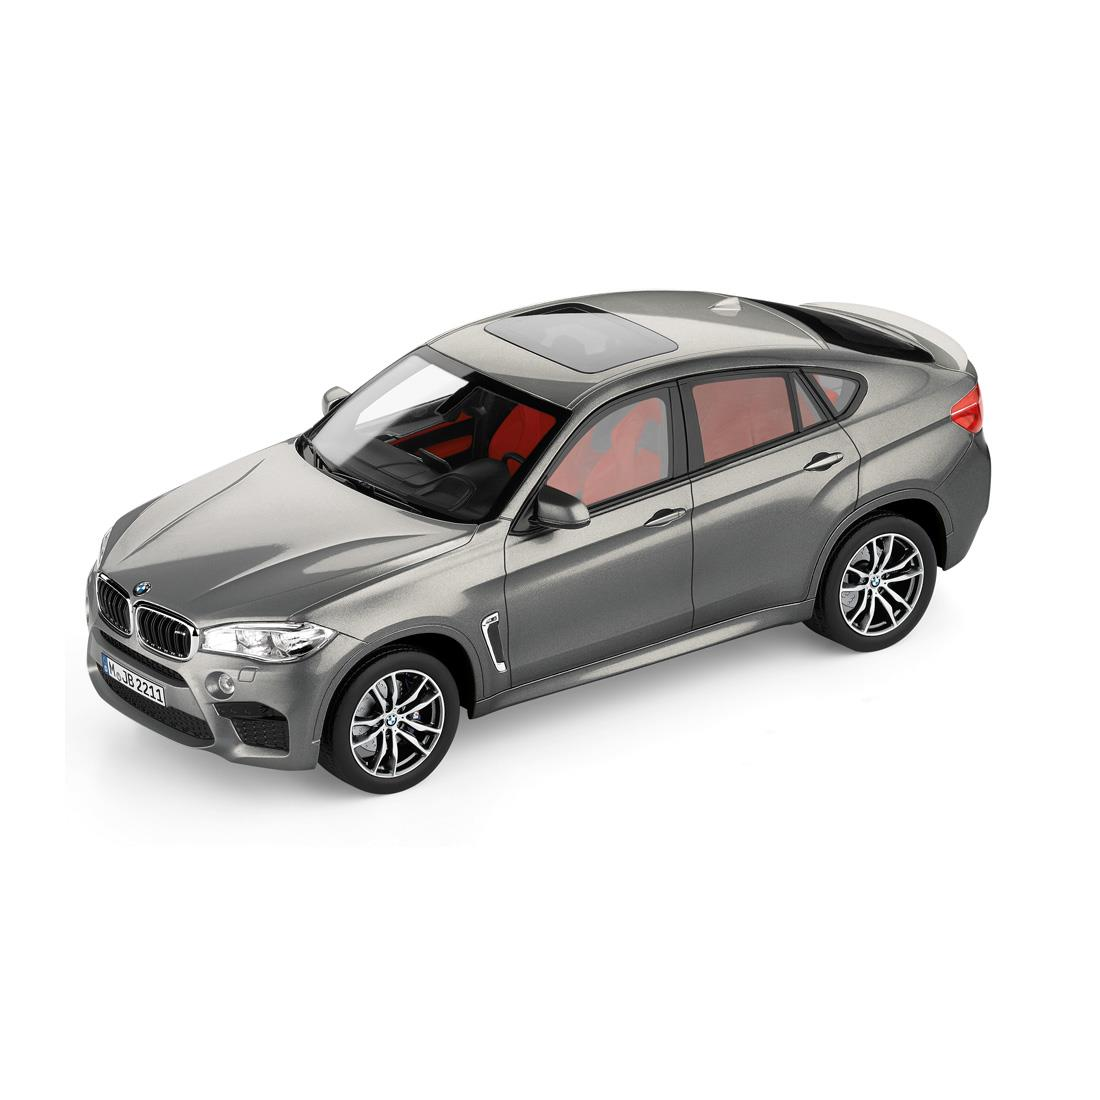 BMW Miniature X6 M (F86) Donington Grey